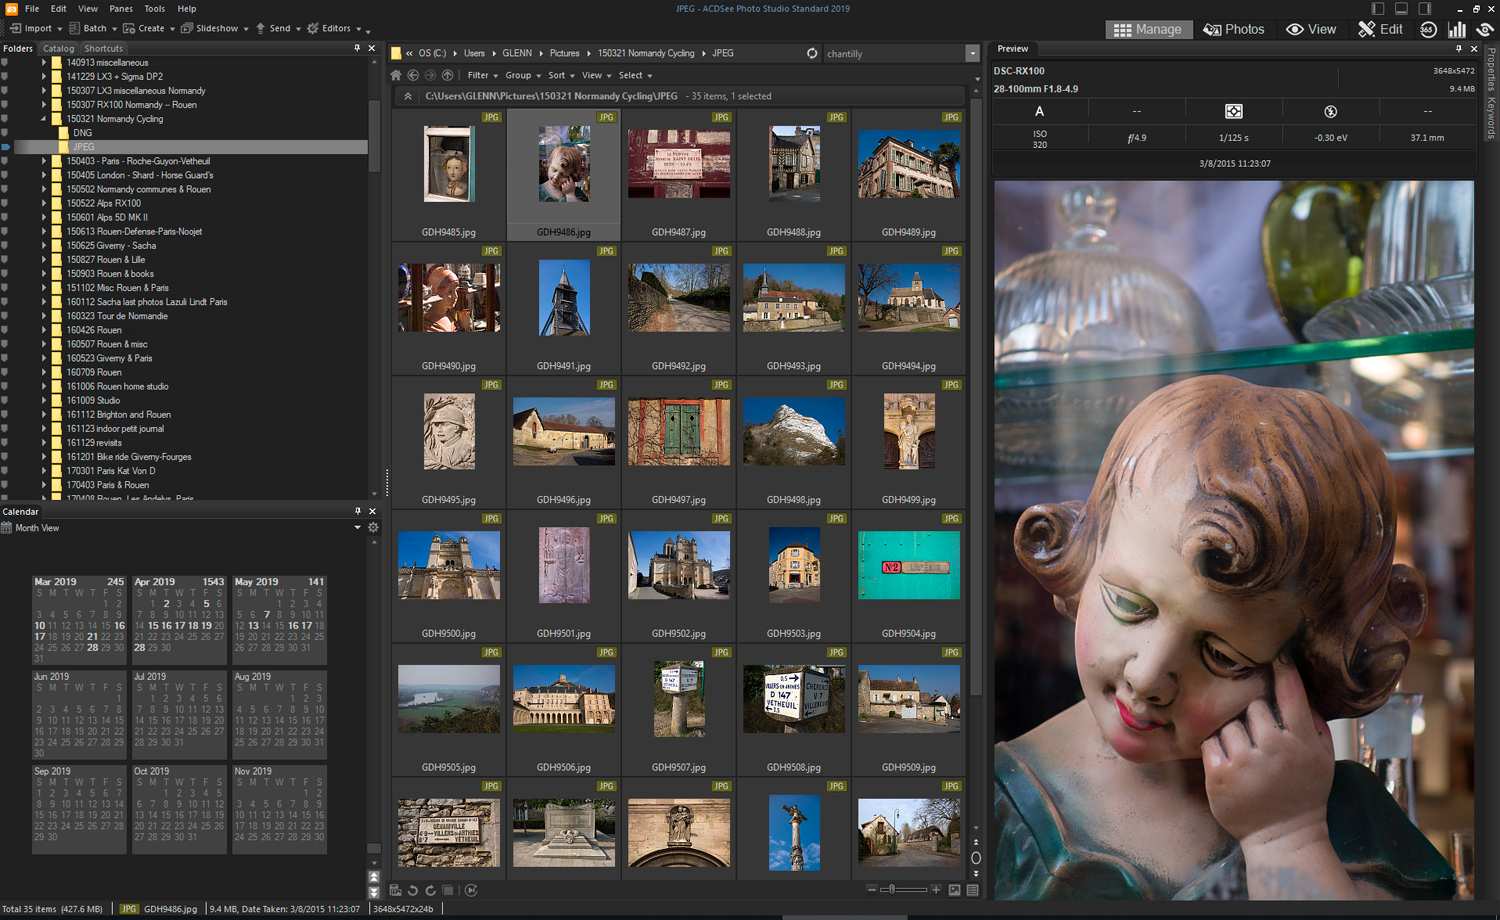 ACDSee Photo Studio Standard 2019 - folder pane